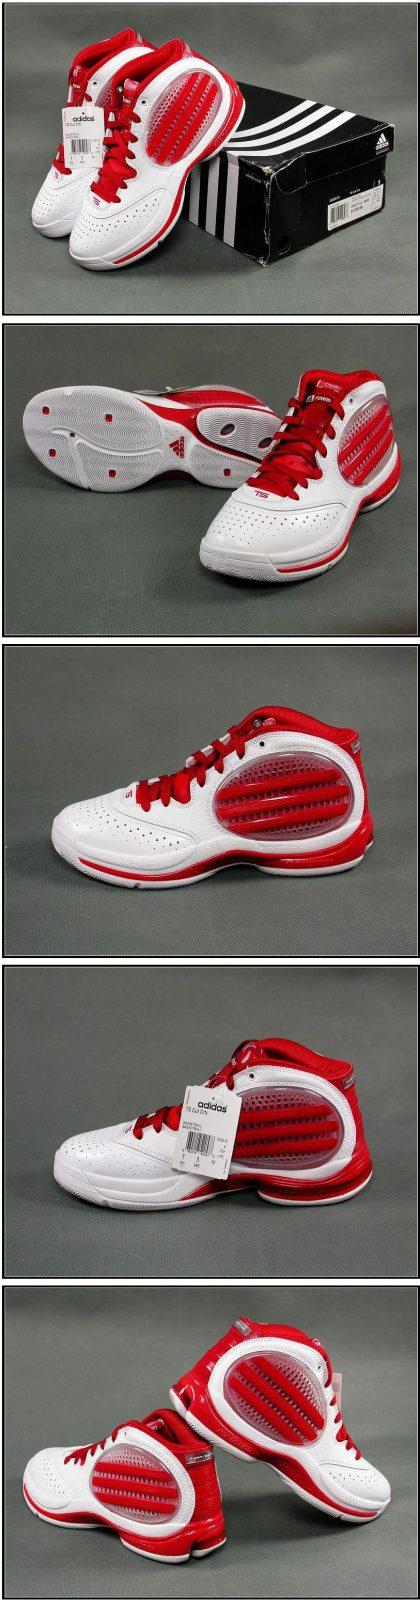 adidas TS Cut Creator T-Mac Edition